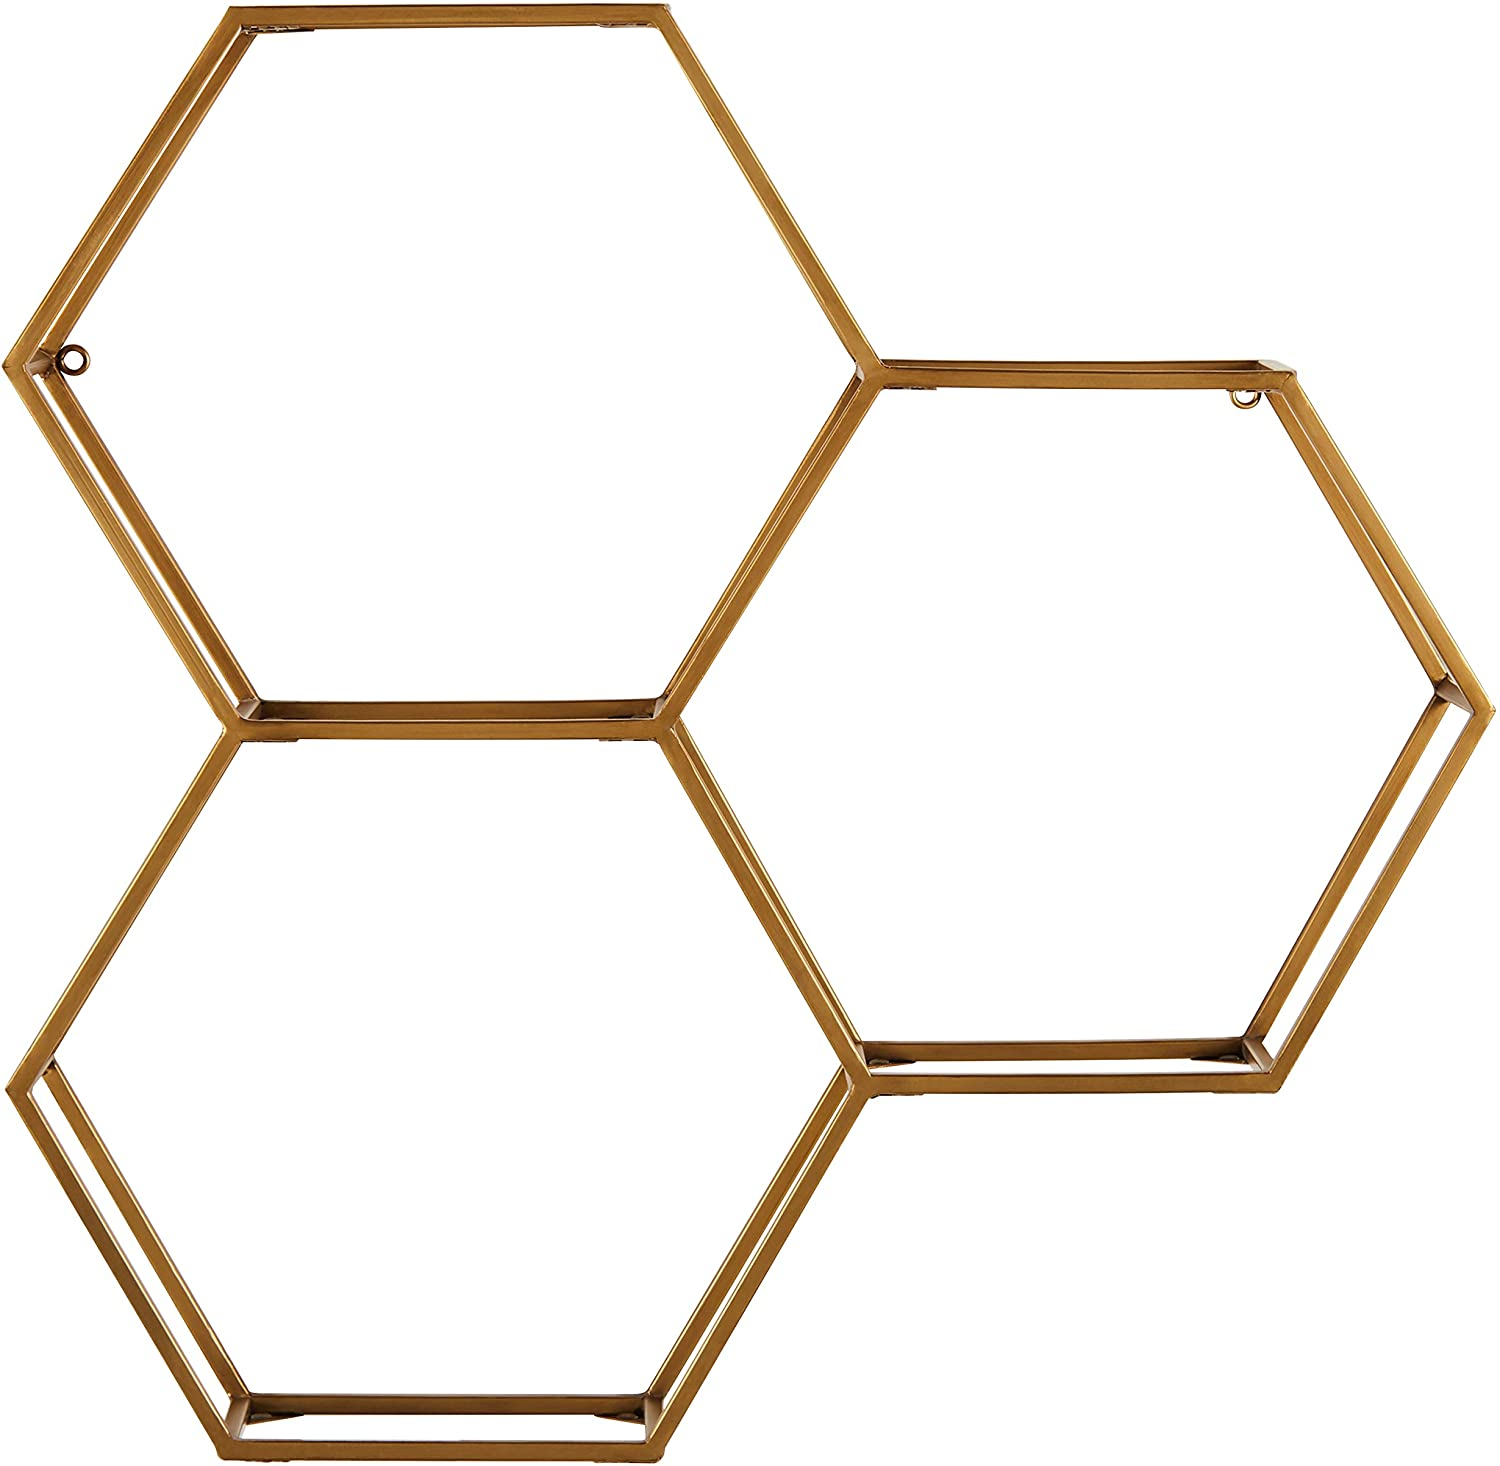 Amazon Brand – Rivet Modern Hexagon Honeycomb Floating Wall Shelf Unit with Glass Shelves - 28 x 28 x 6 Inch, Gold